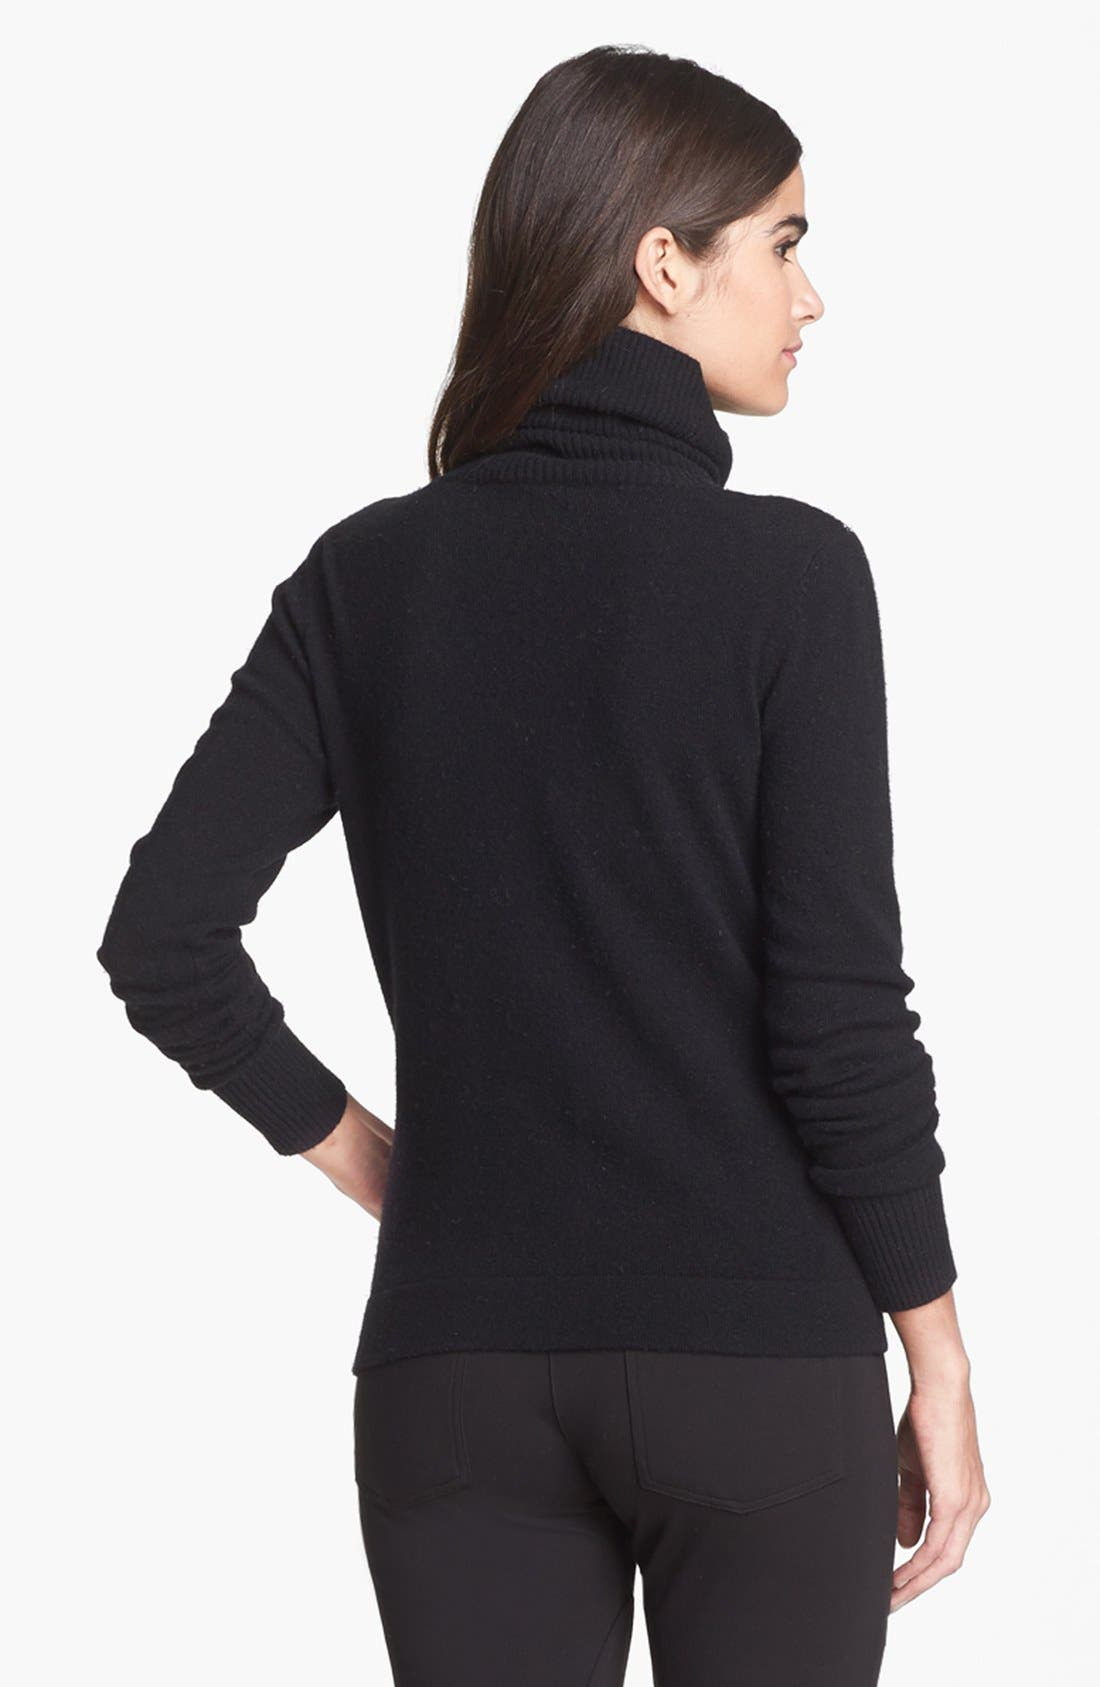 'Slogan' Wool & Cashmere Sweater,                             Alternate thumbnail 3, color,                             001